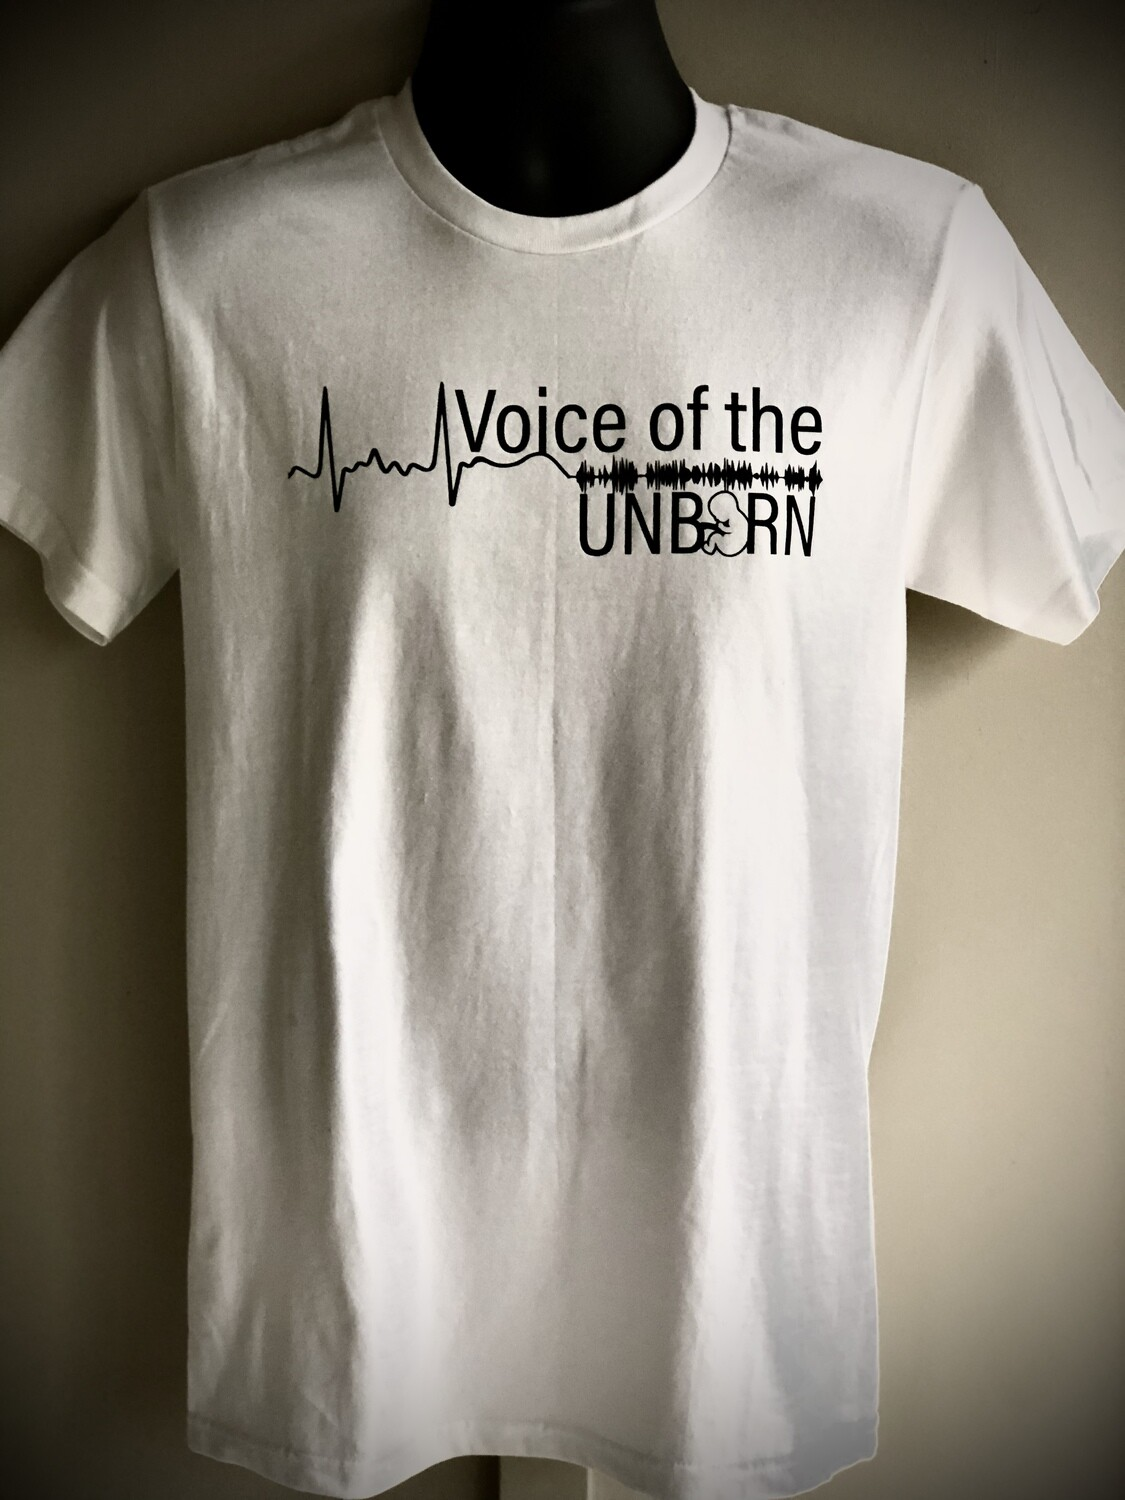 Voice of the Unborn (T-Shirt is Available in White, Red, and Black)